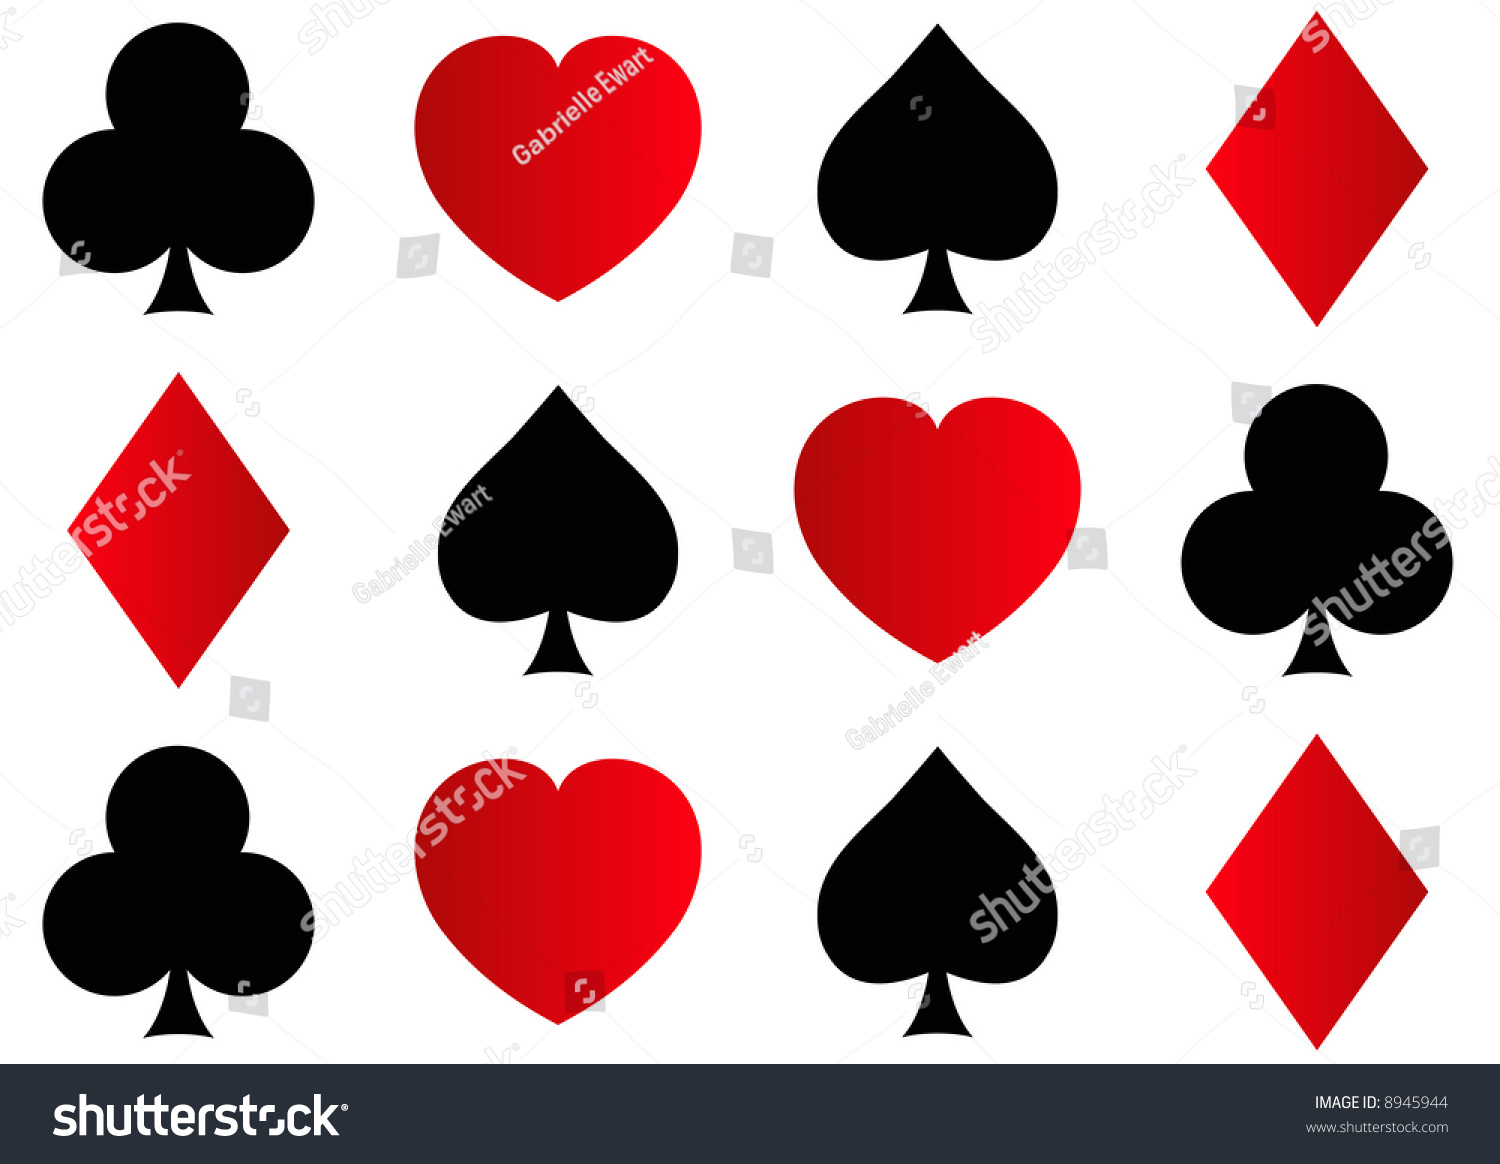 rows spades clubs hearts diamonds shapes stock illustration 8945944